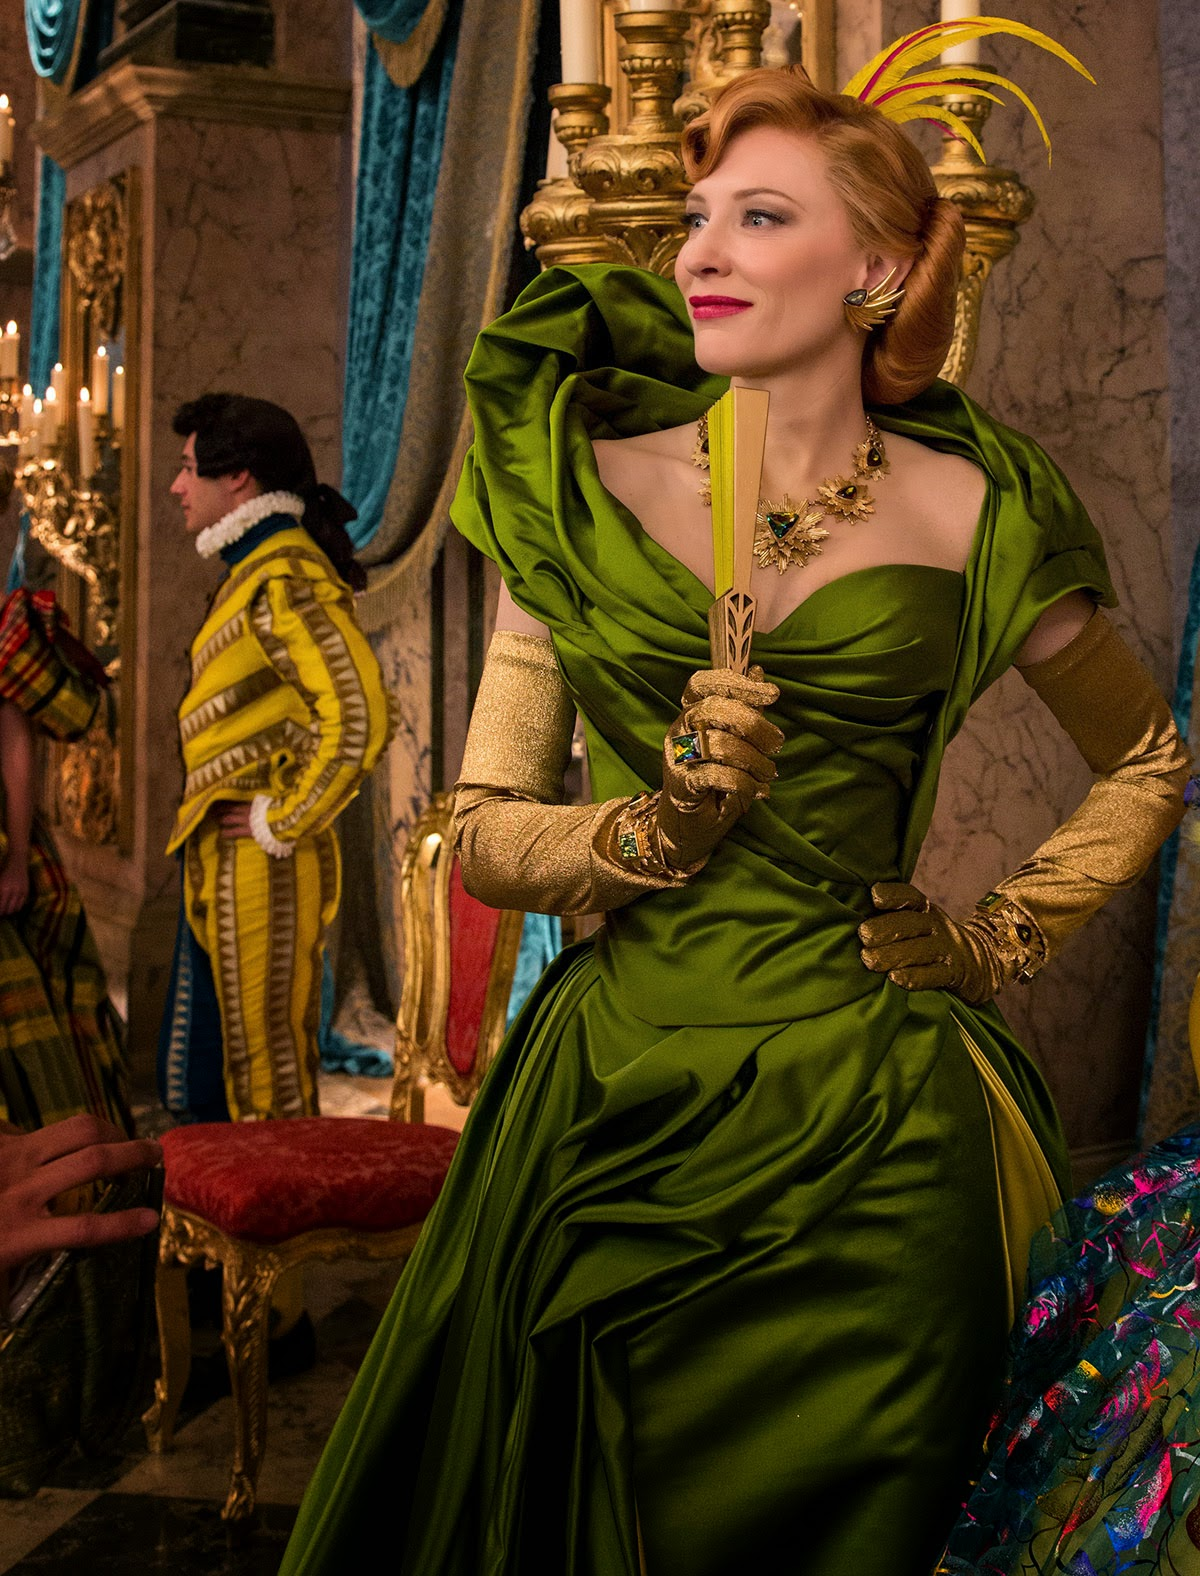 Via Libris Notes  sc 1 st  Cautionary Women & How to Dress Like Lady Tremaine the Cate Blanchett Version ...